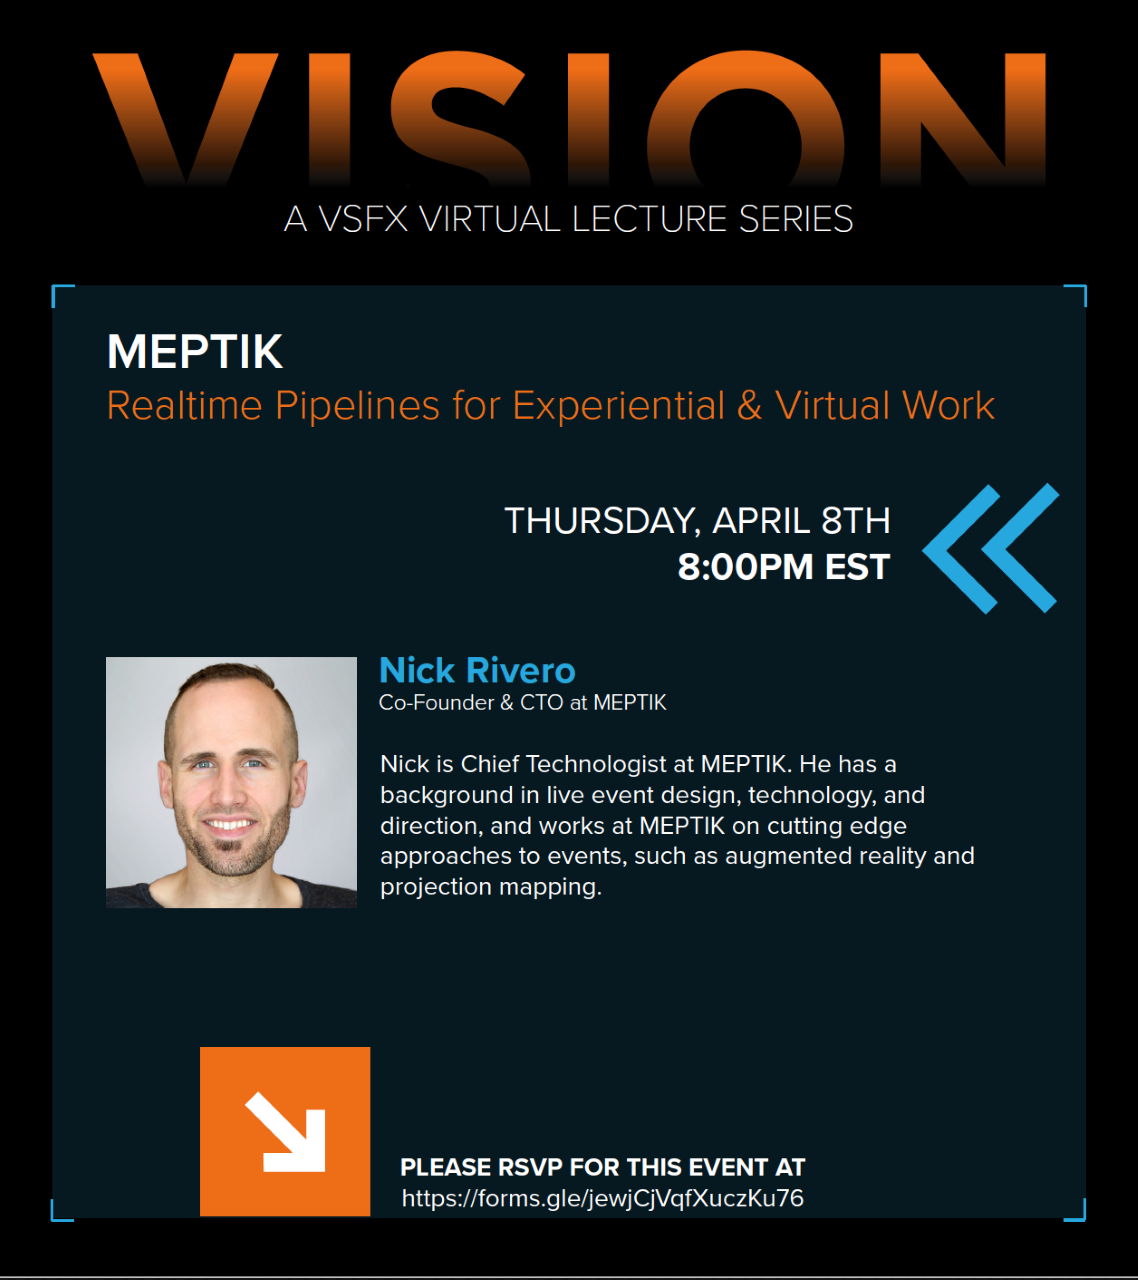 VISION – A VSFX Virtual Lecture Series presents – Nick Rivero